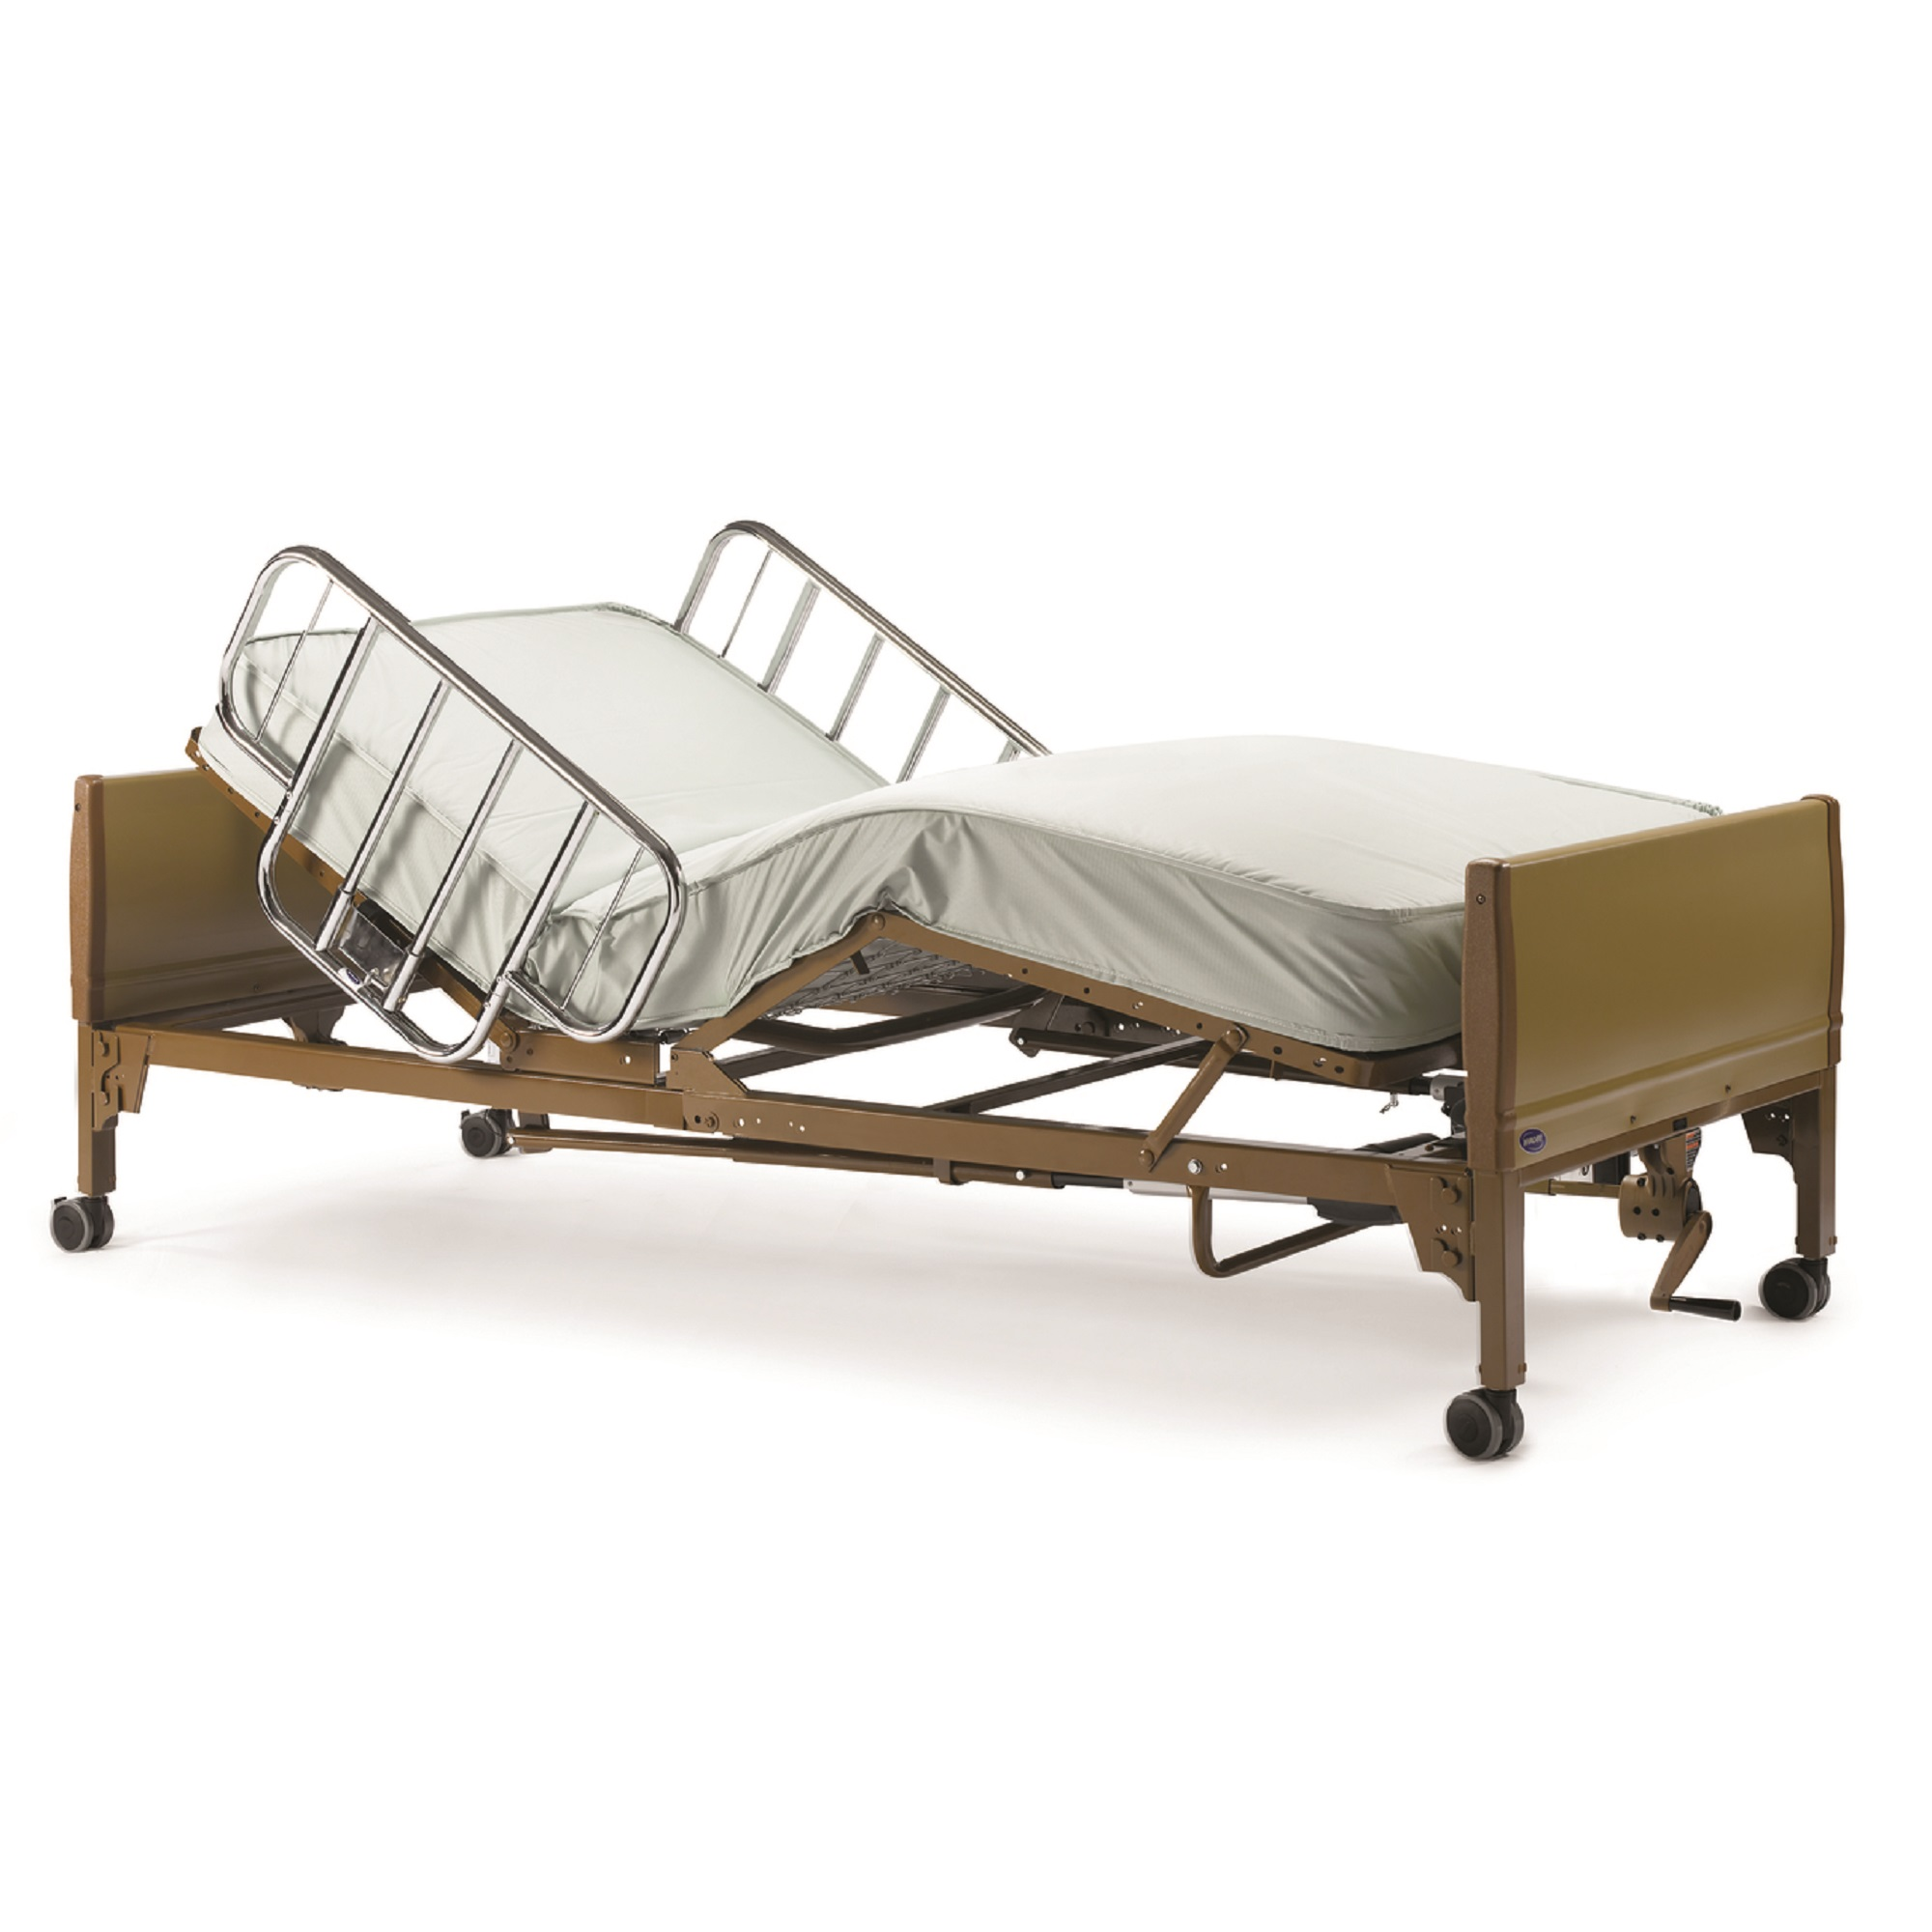 Invacare Semi-Electric Homecare Bed with Innerspring Matt...